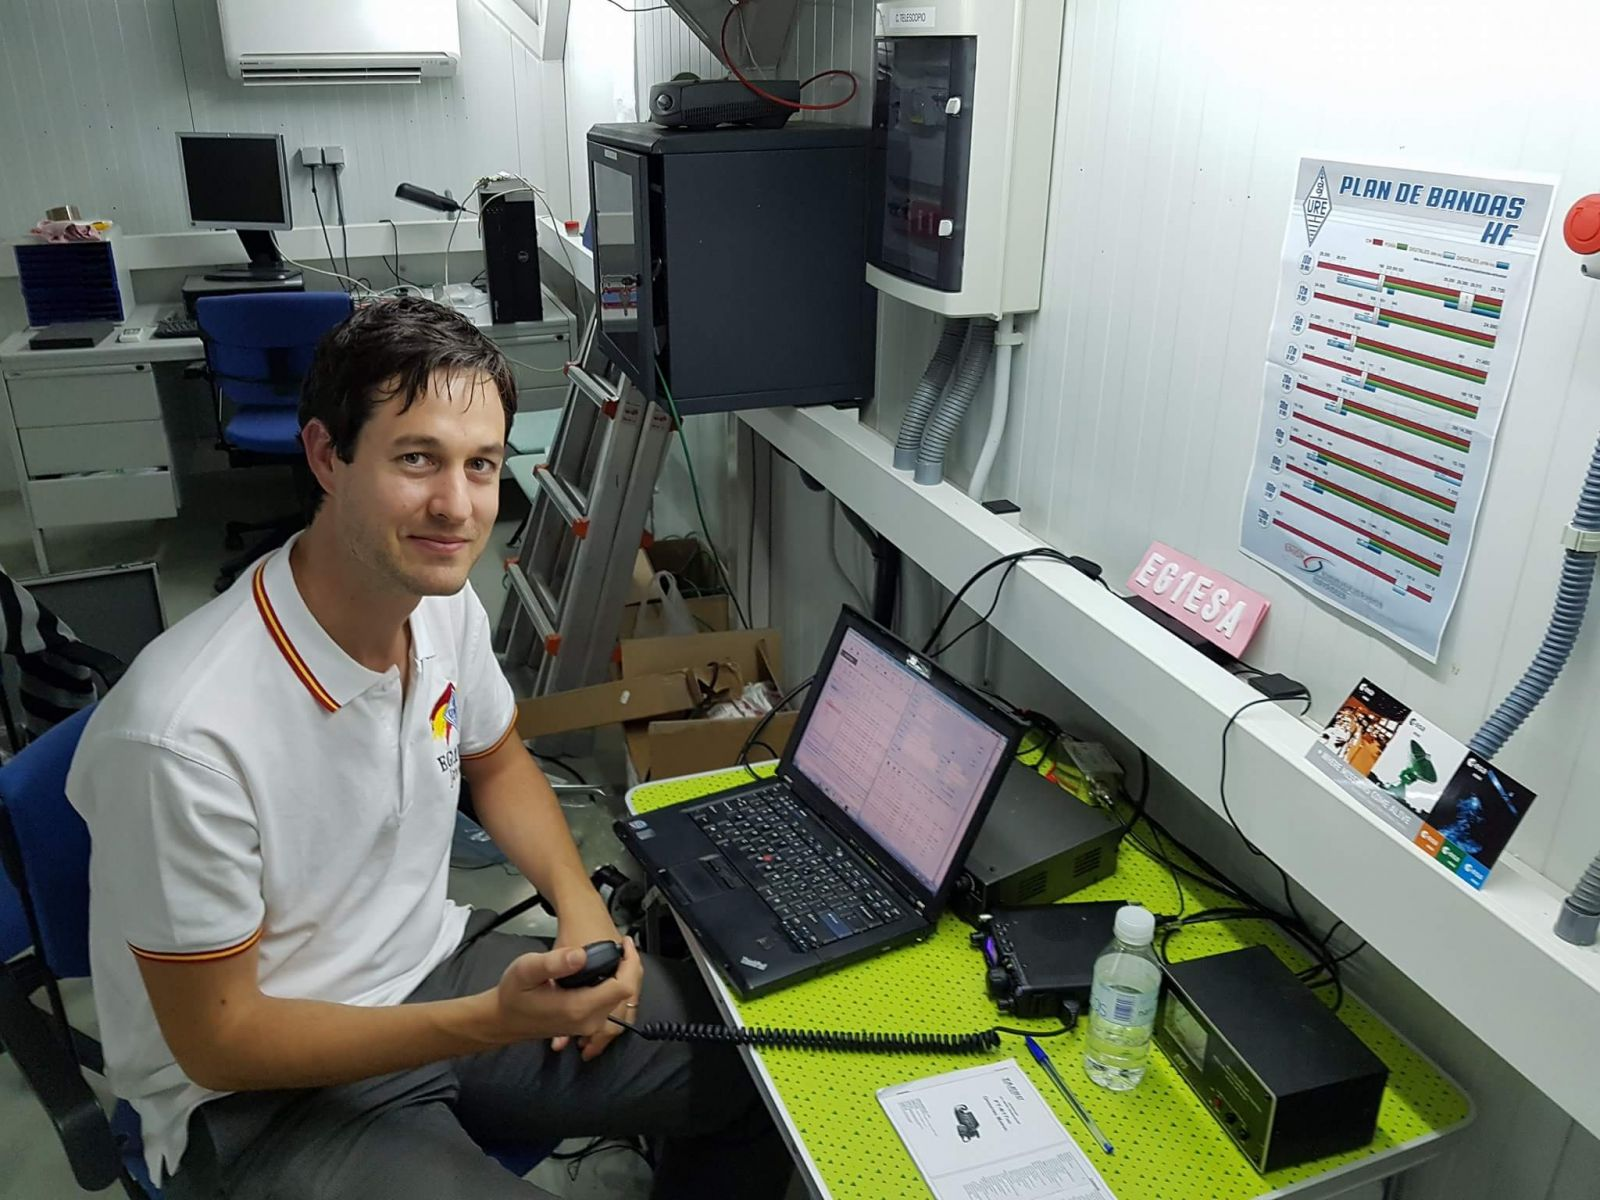 Javier Operating EG1ESA on 2017/09/28